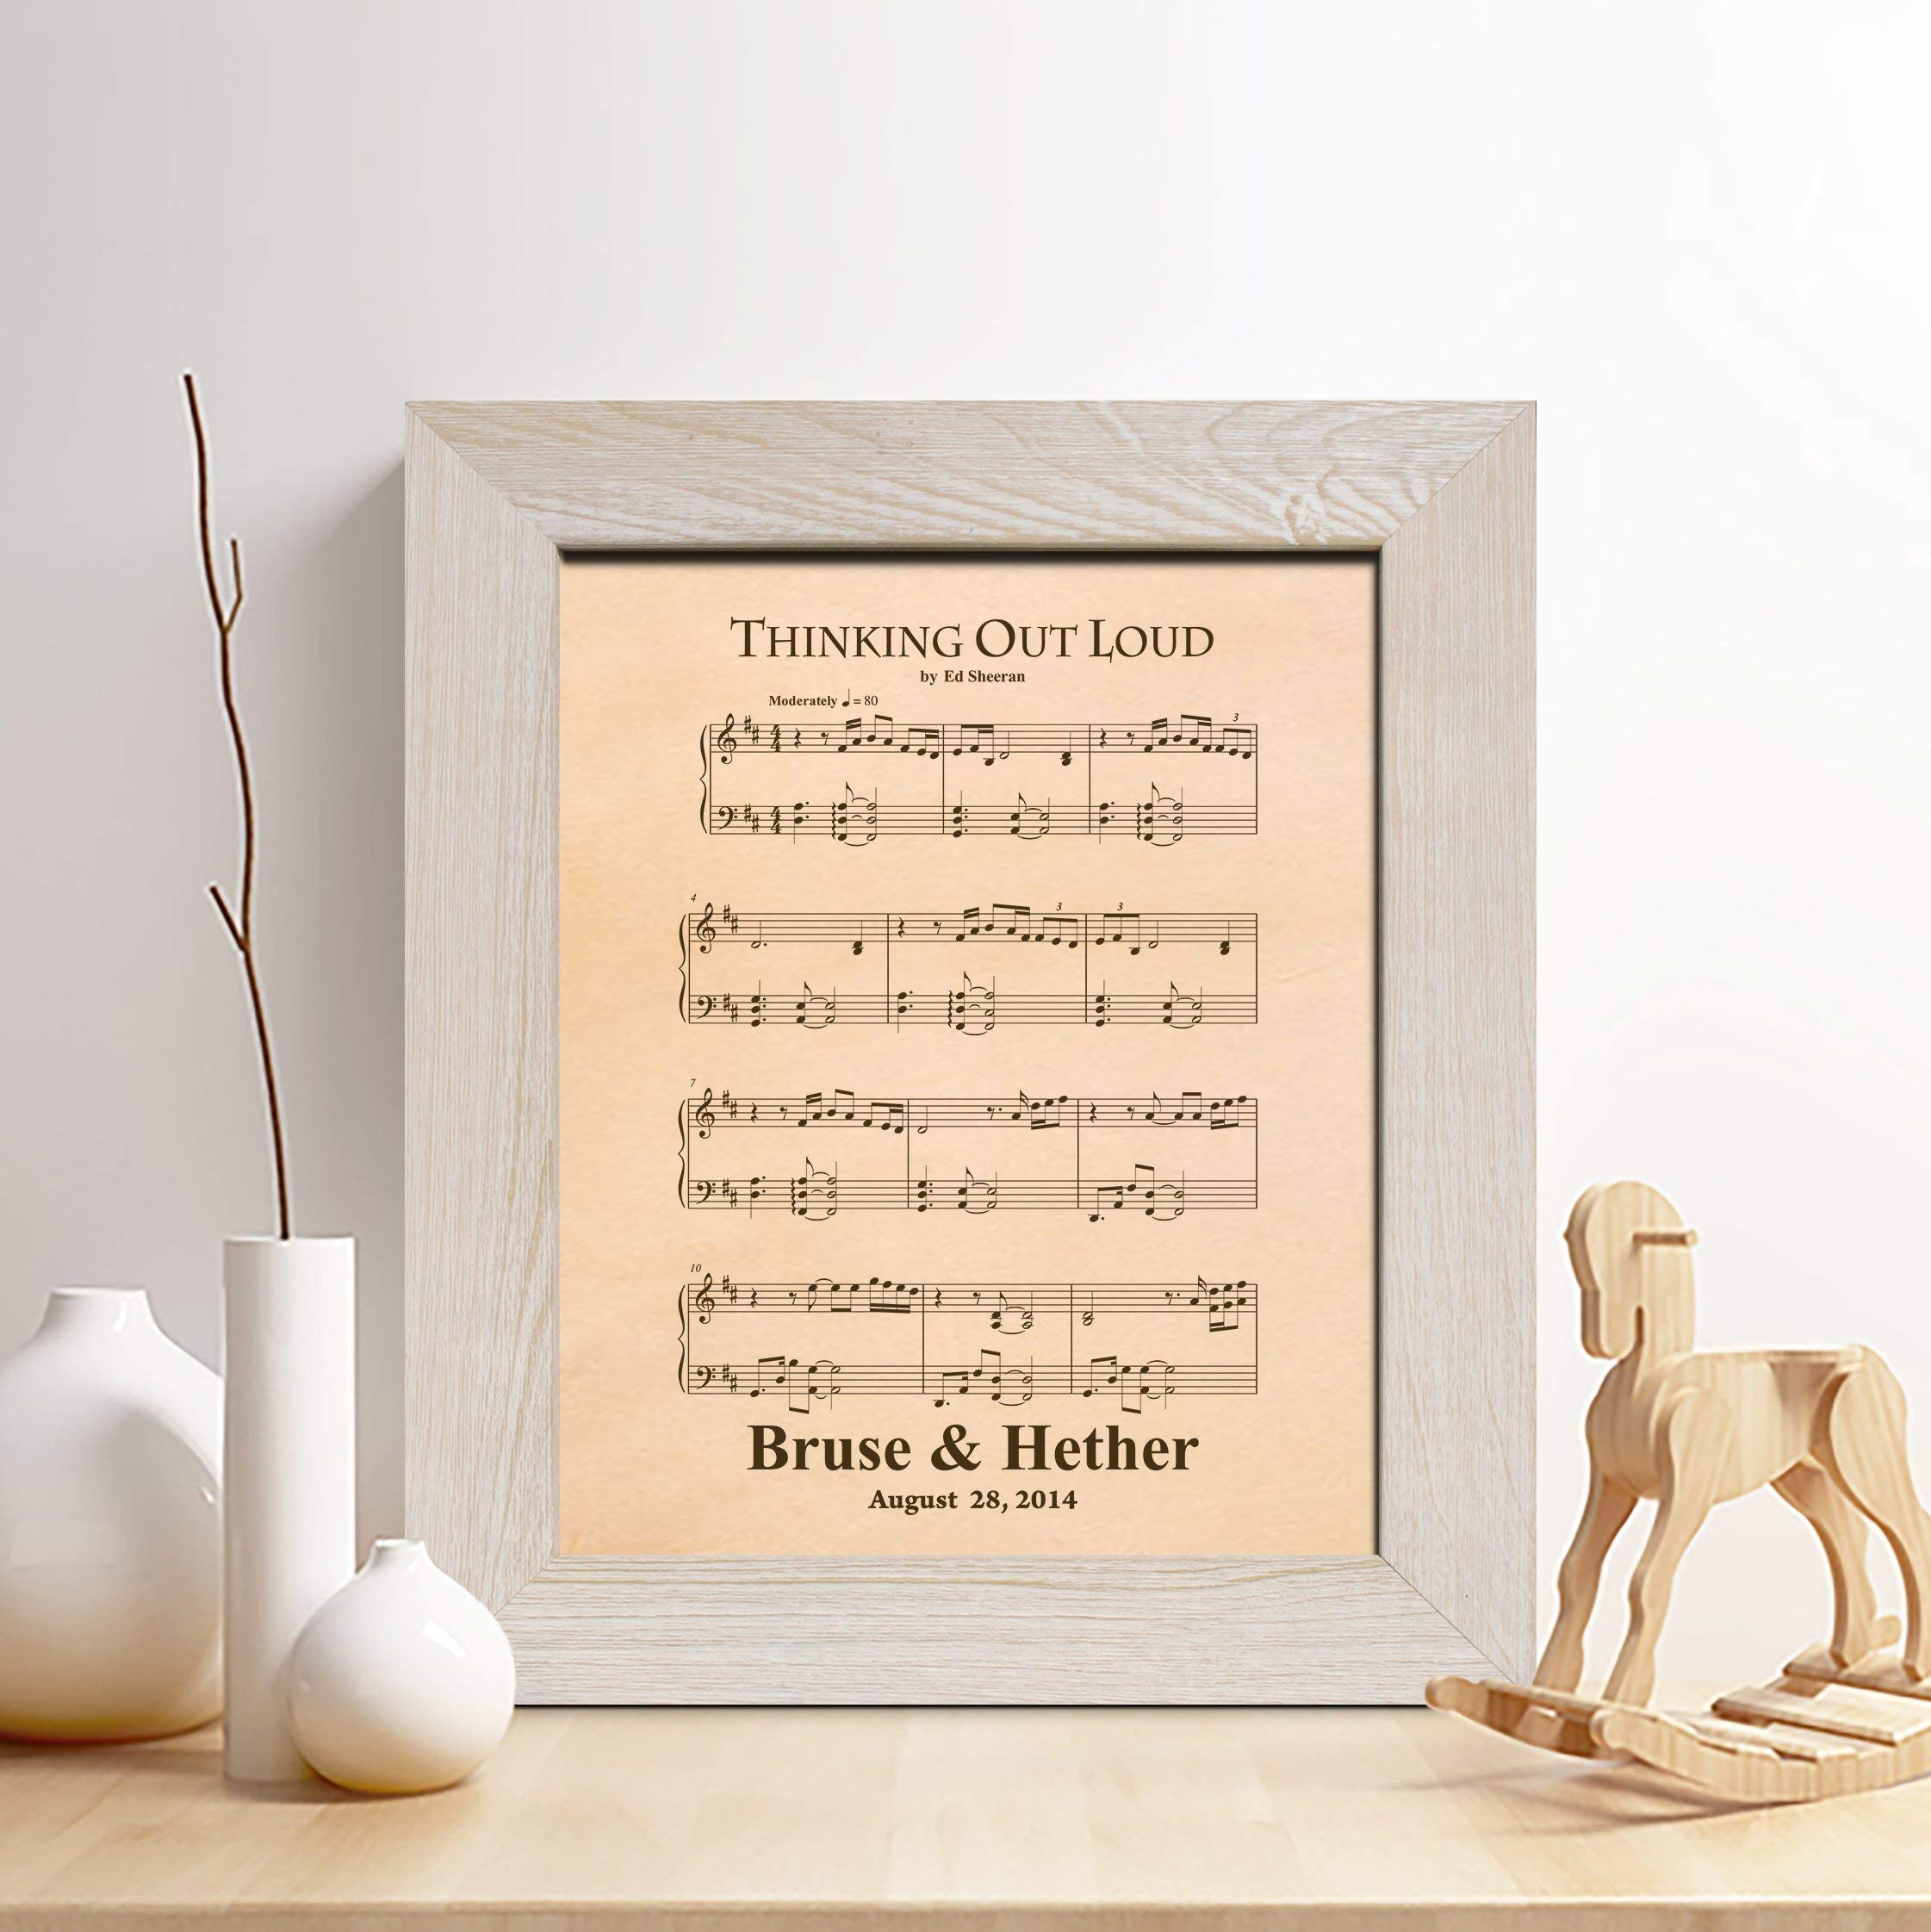 Personalized Leather 3rd Anniversary Gift for Him or Her, First Dance Song Leather Engraving, Music Notes Sheet, Gifts for Husband and Wife, 3 Years Together